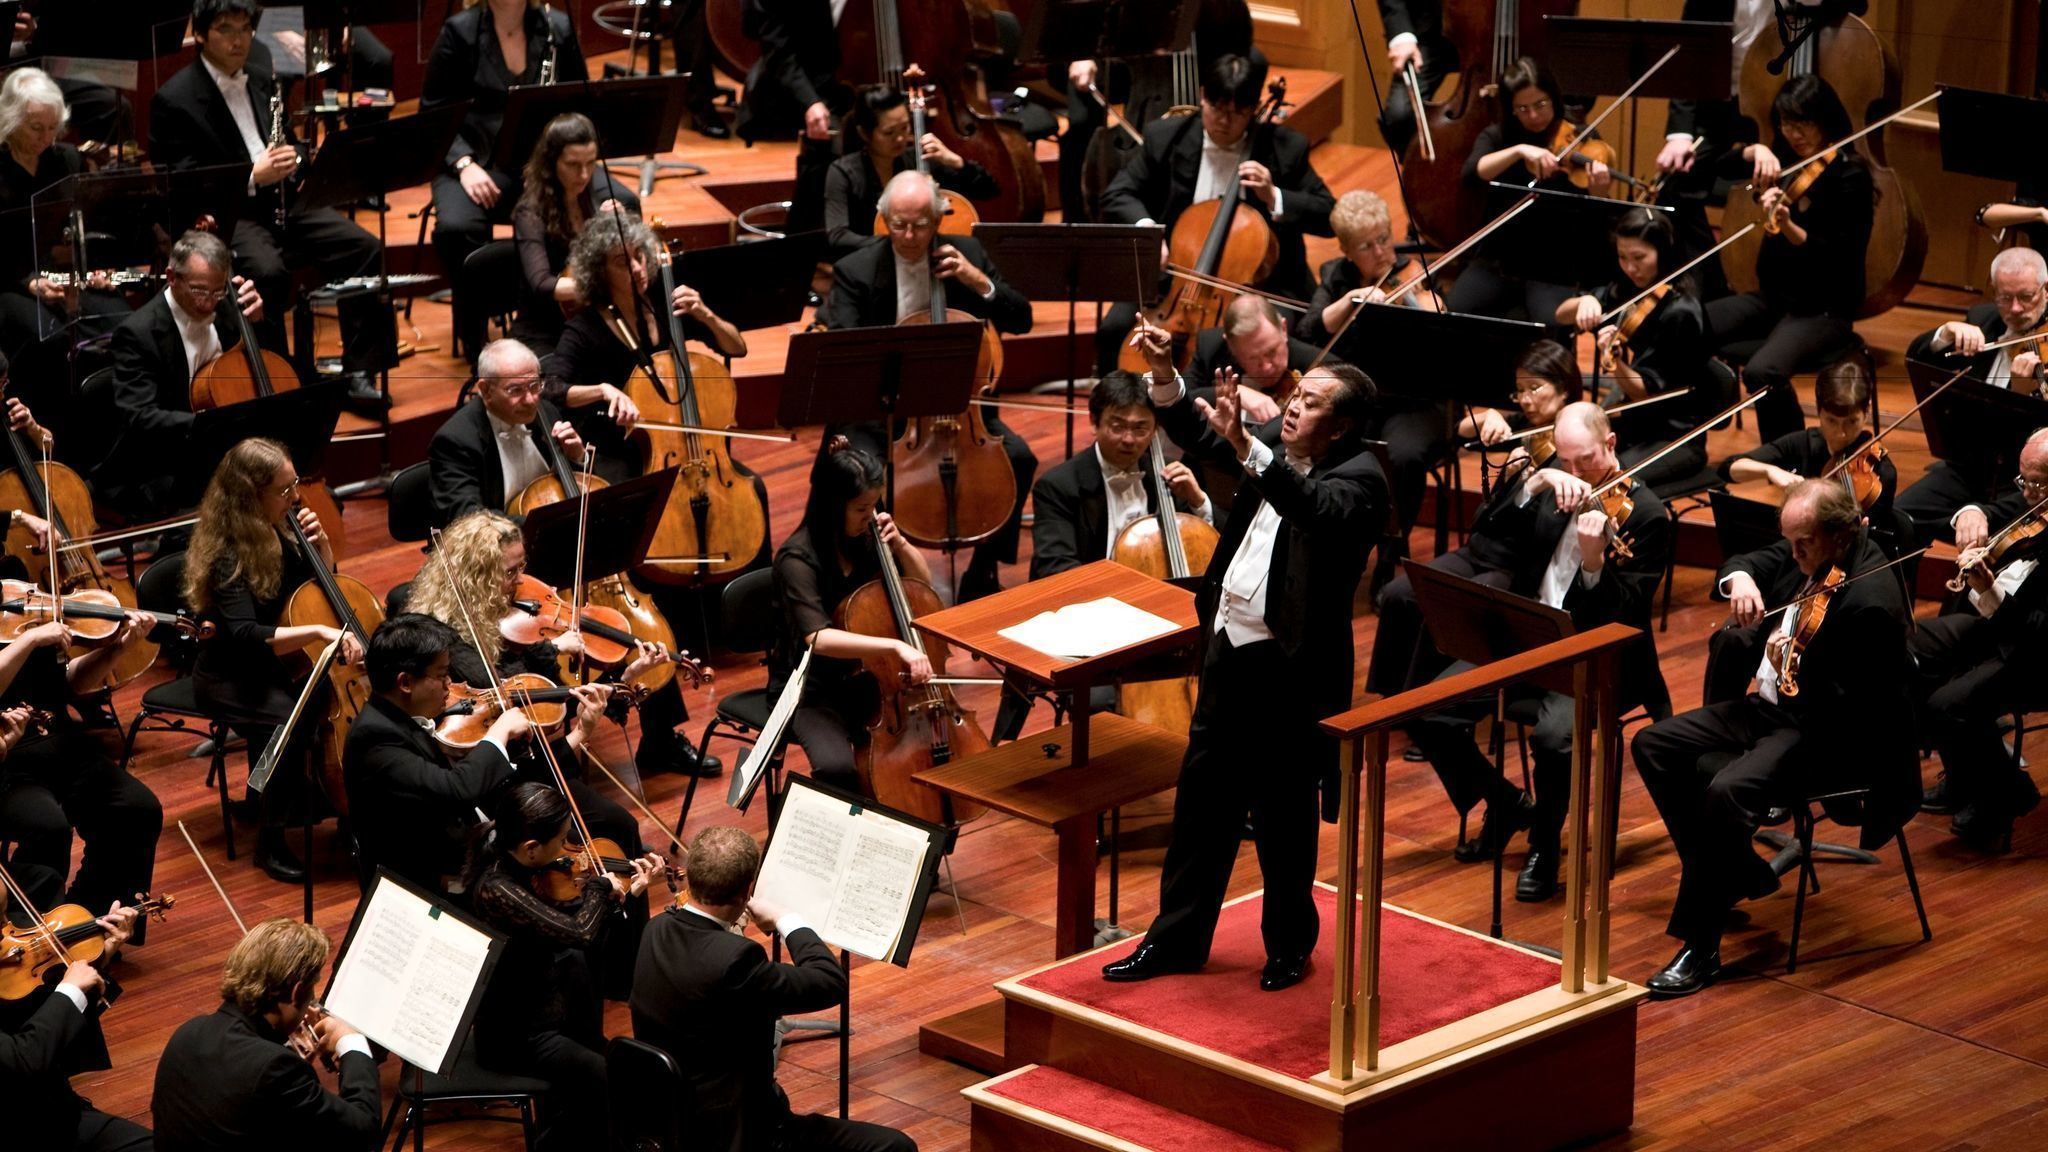 The image above shows a symphony playing classical music.